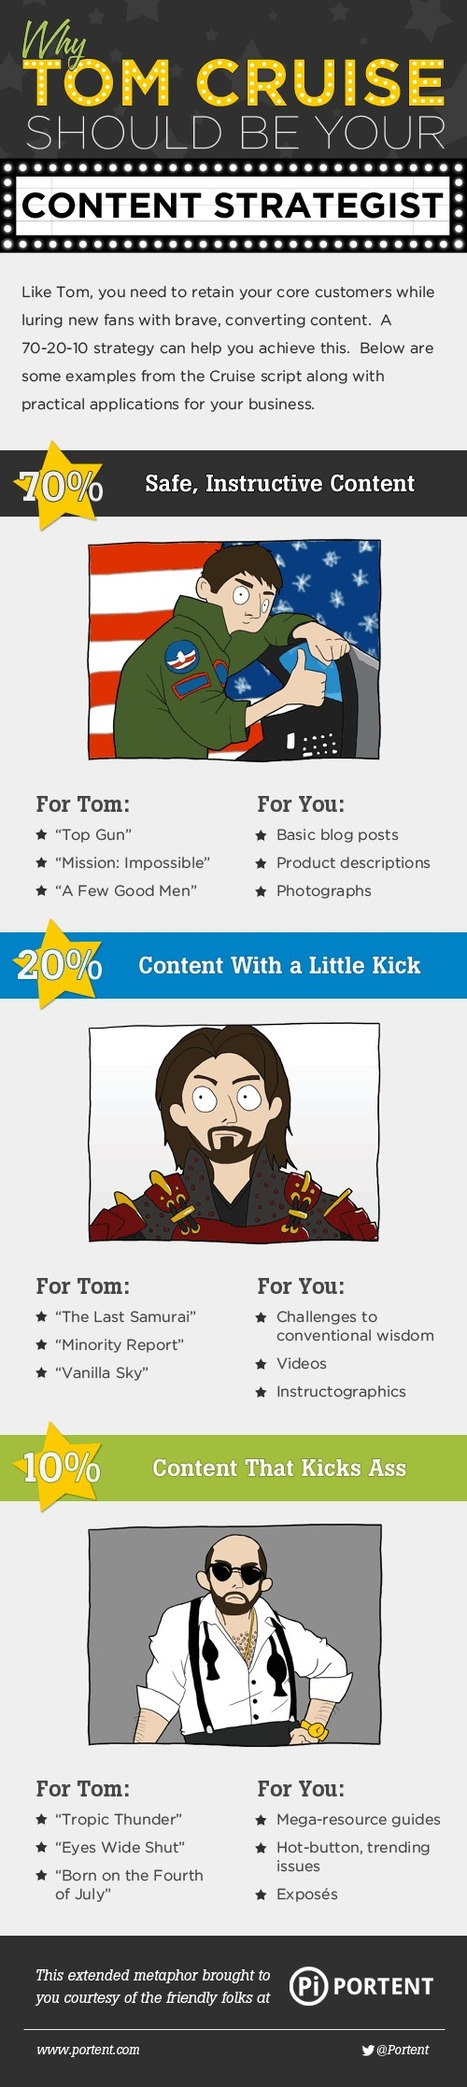 Ten Steps to a Butt-Kicking Content Creation Strategy | digital marketing strategy | Scoop.it